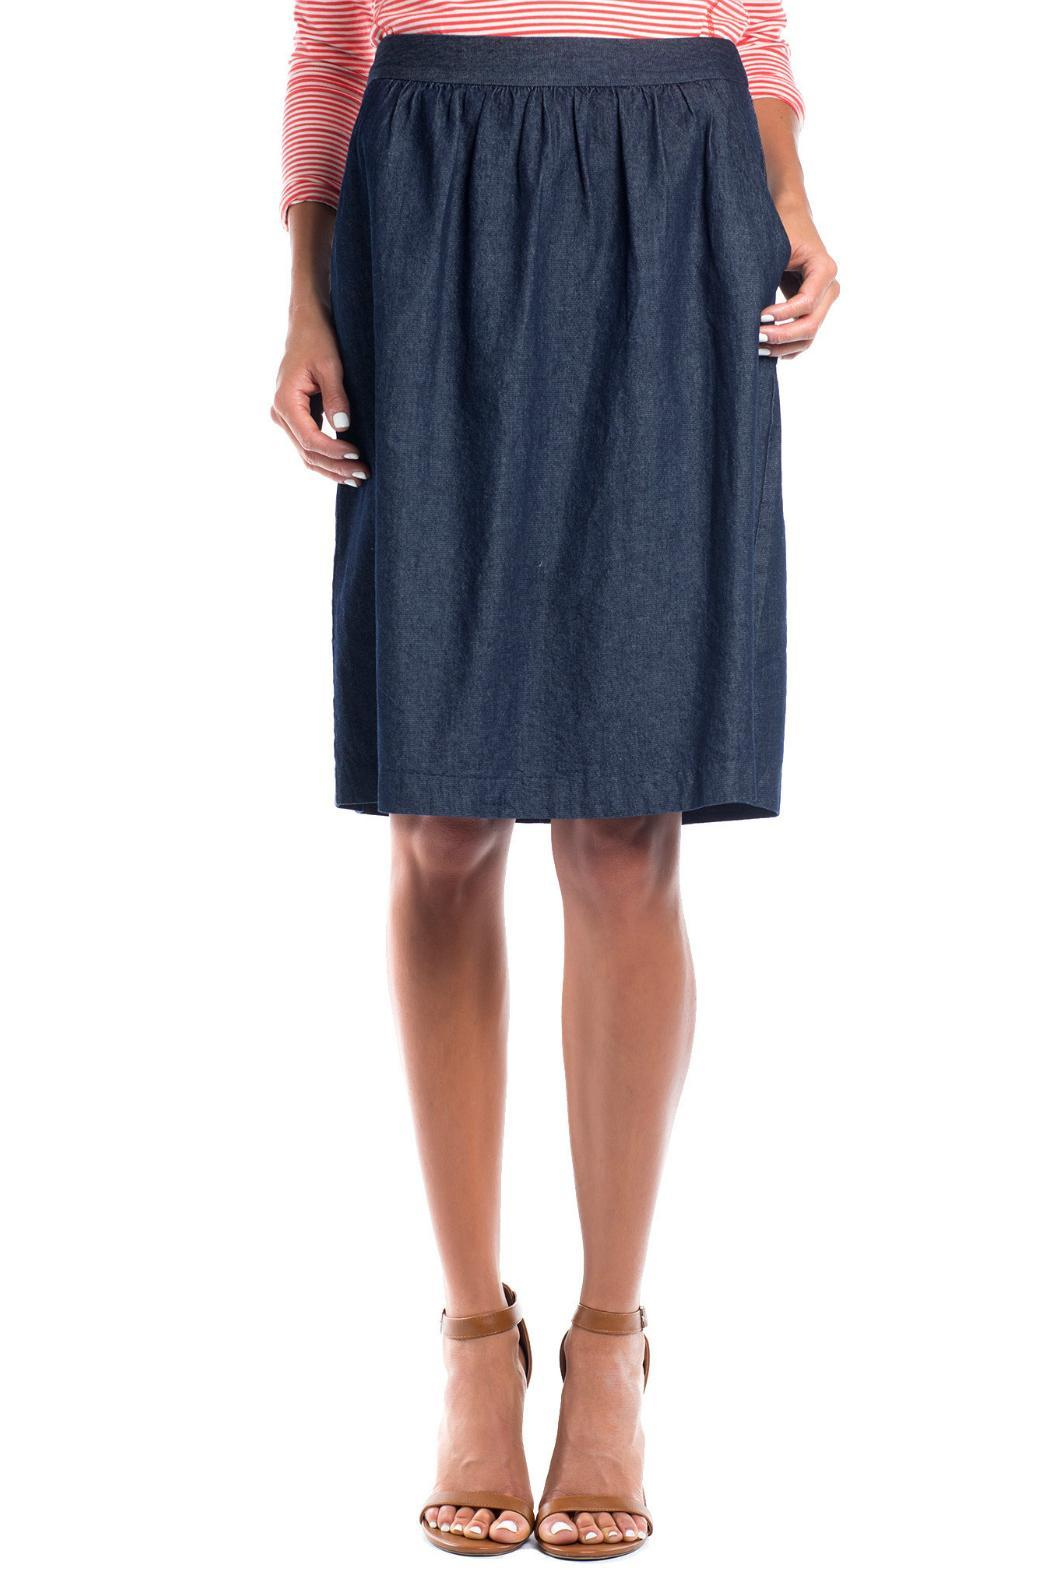 Ruelle Boutique Blue Jean Skirt from Vermont — Shoptiques